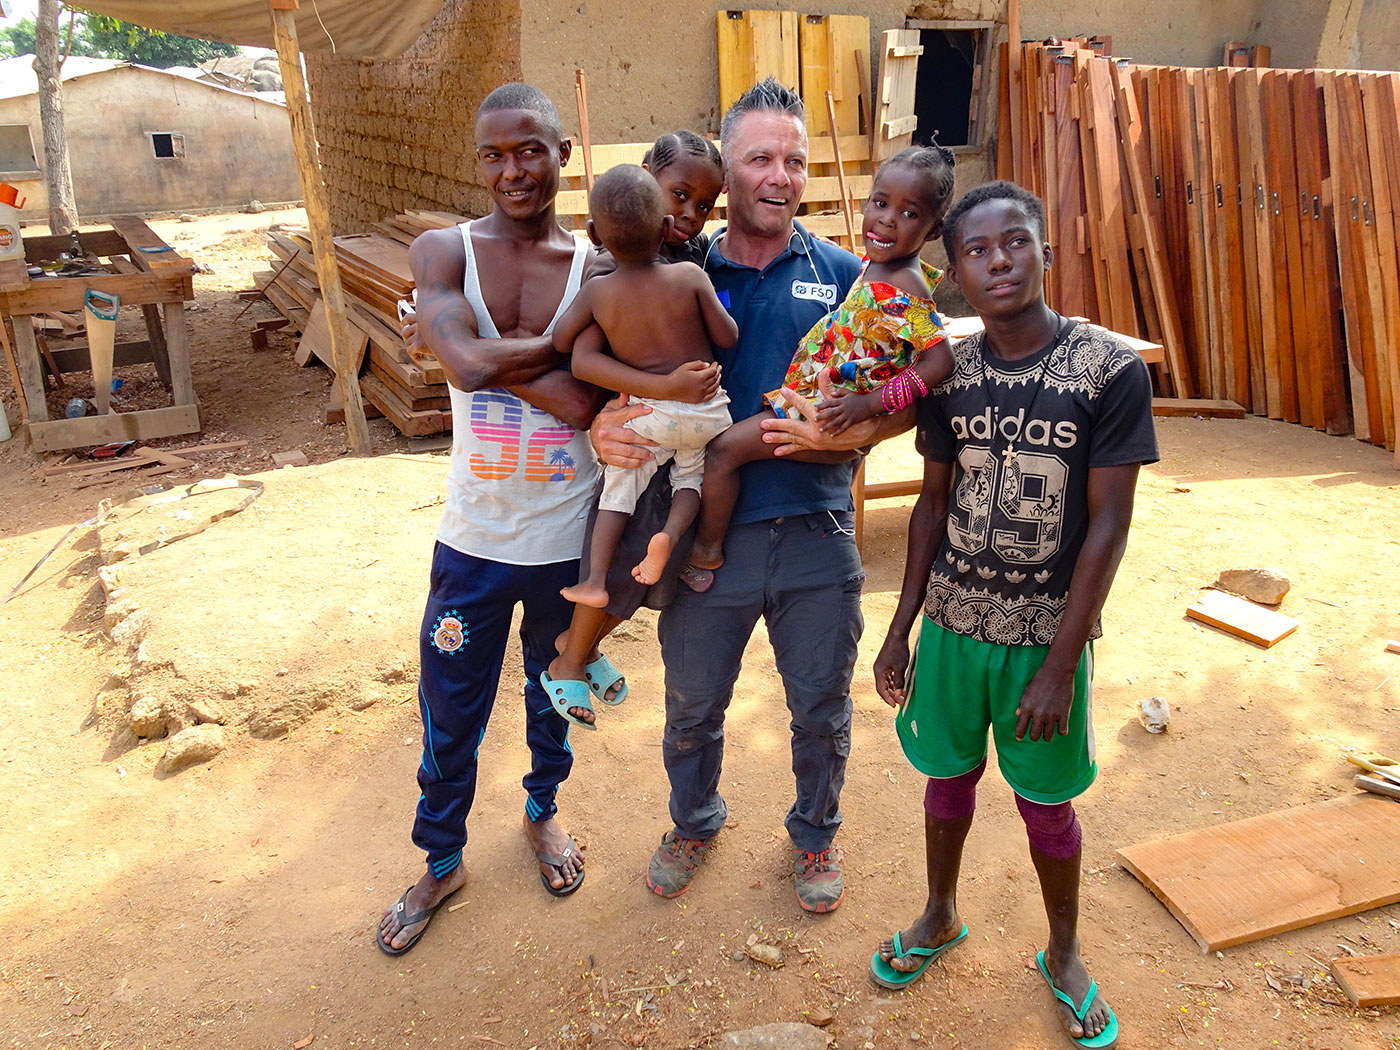 A man holding 3 kids and the other two man standing at his left and right